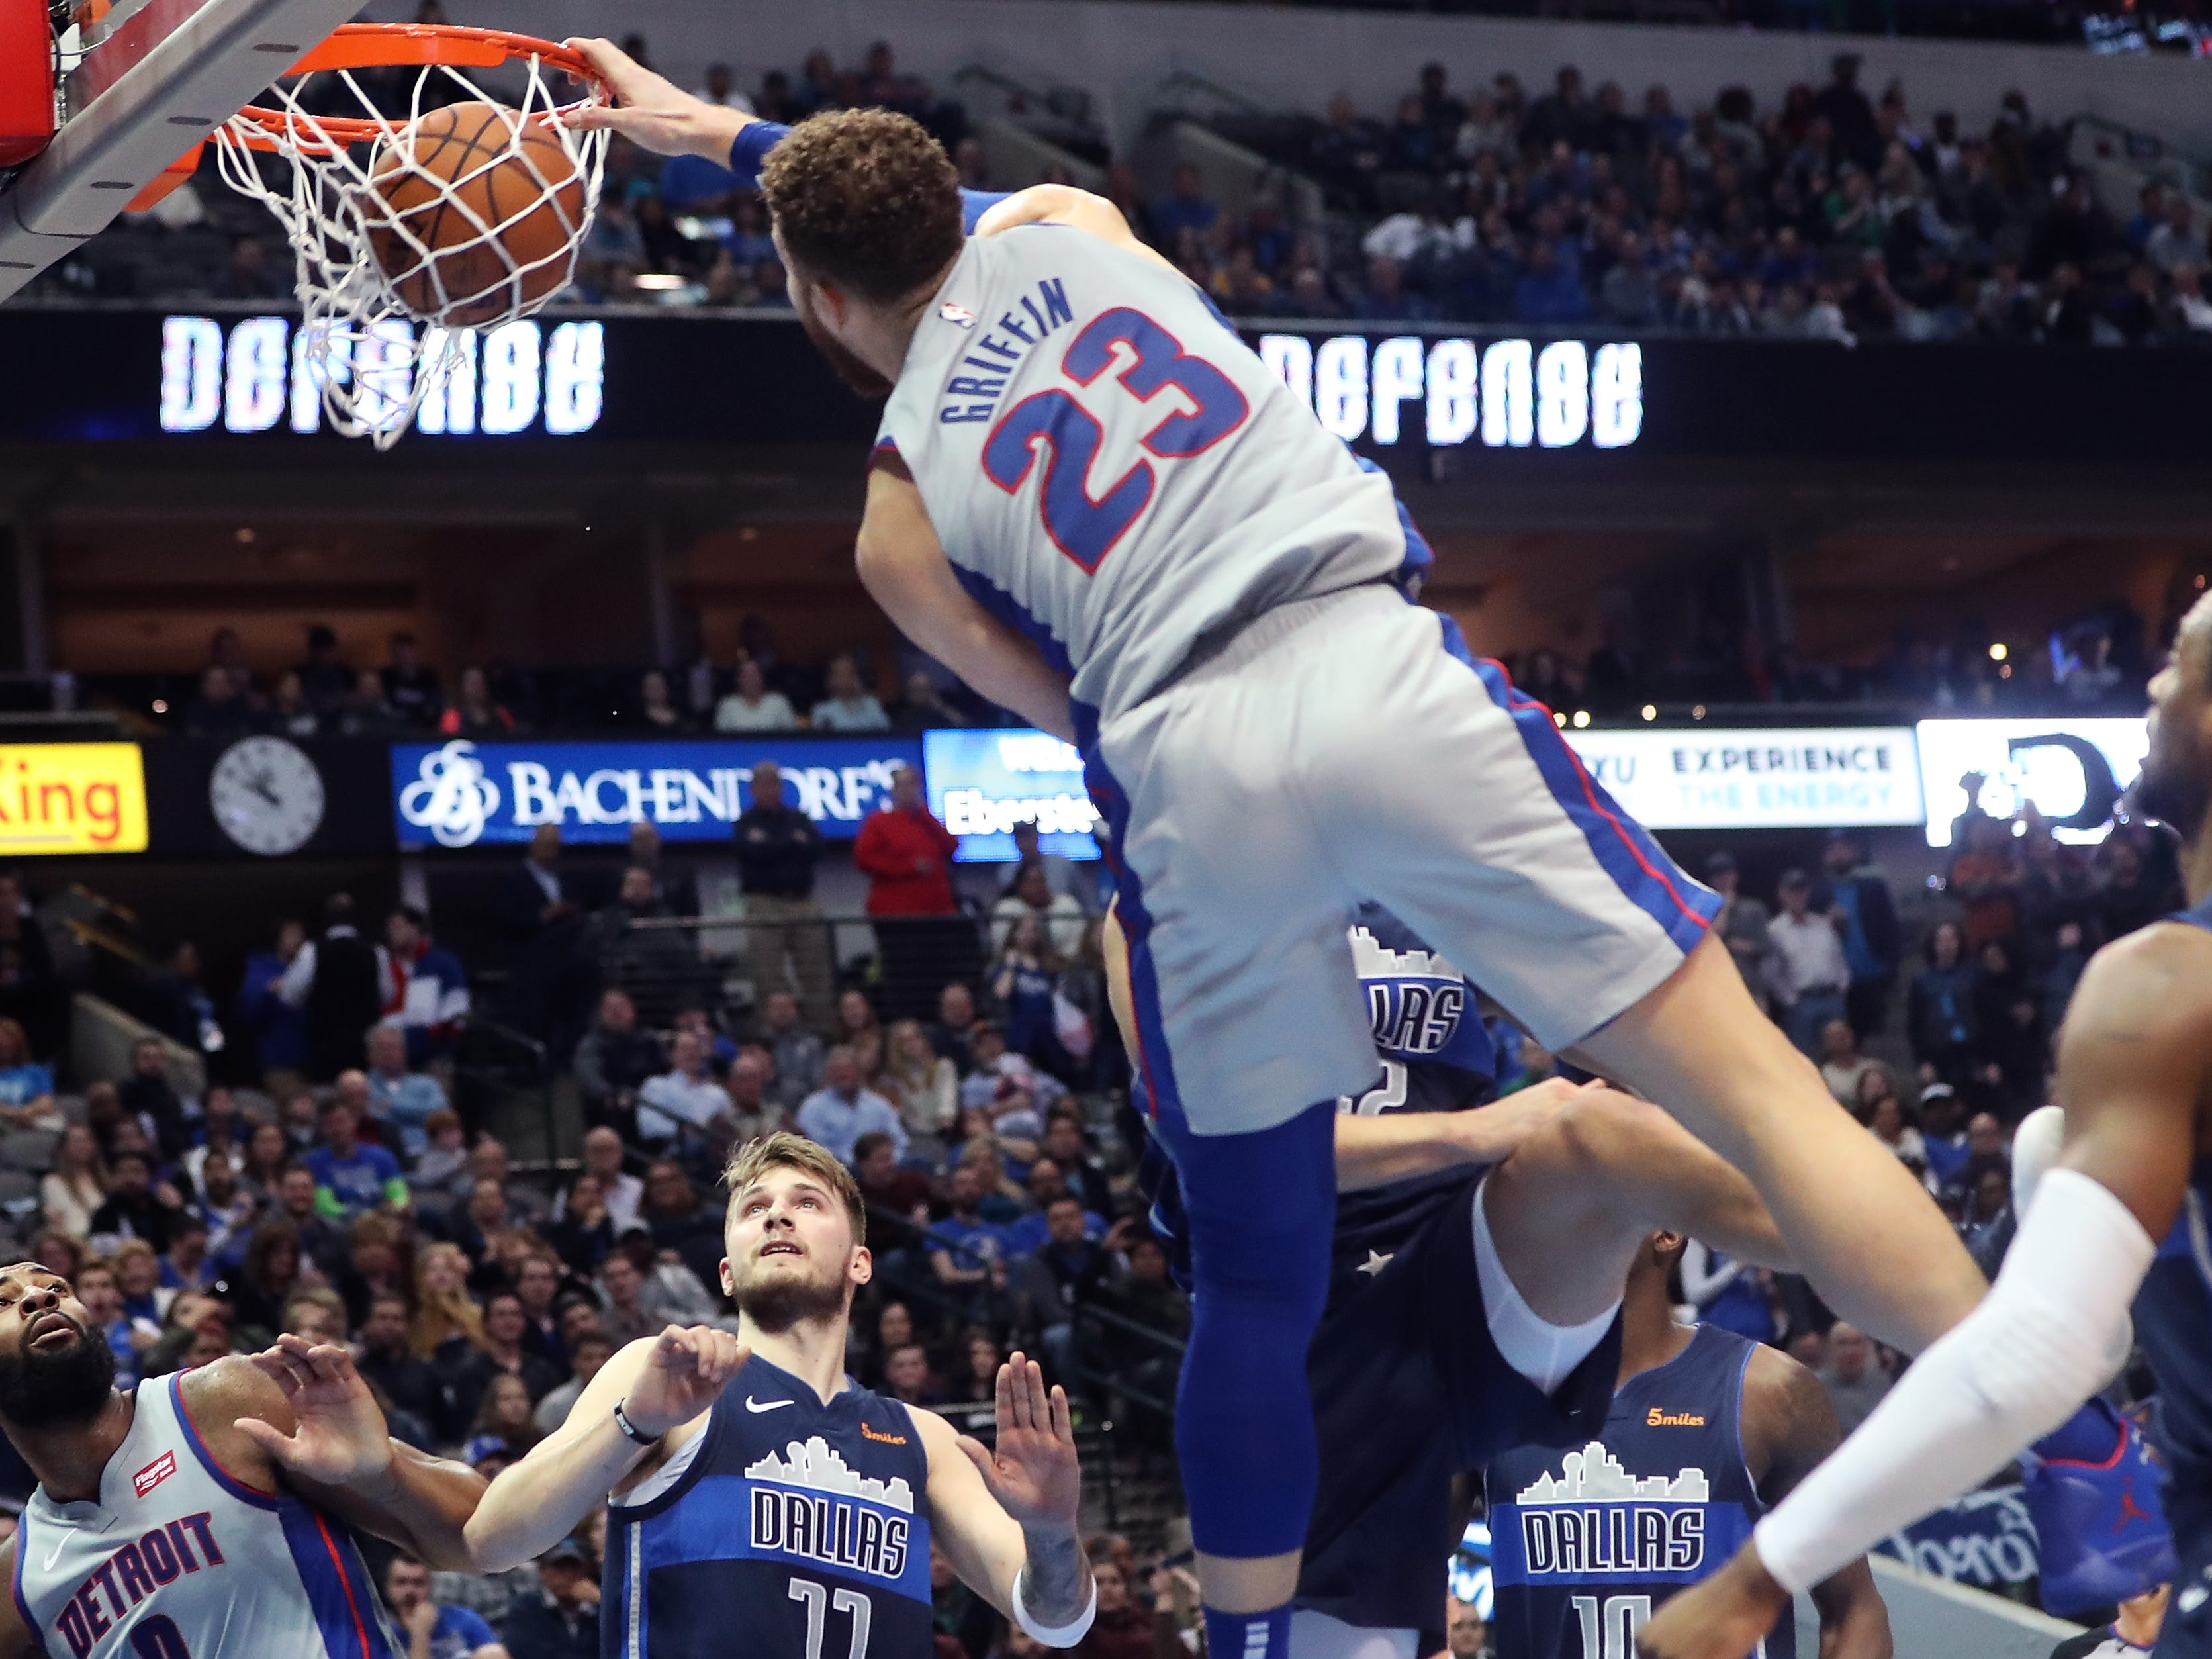 Jan. 25: Pistons forward Blake Griffin rises up to throw down the one-handed slam during the second half against the Mavericks in Dallas.